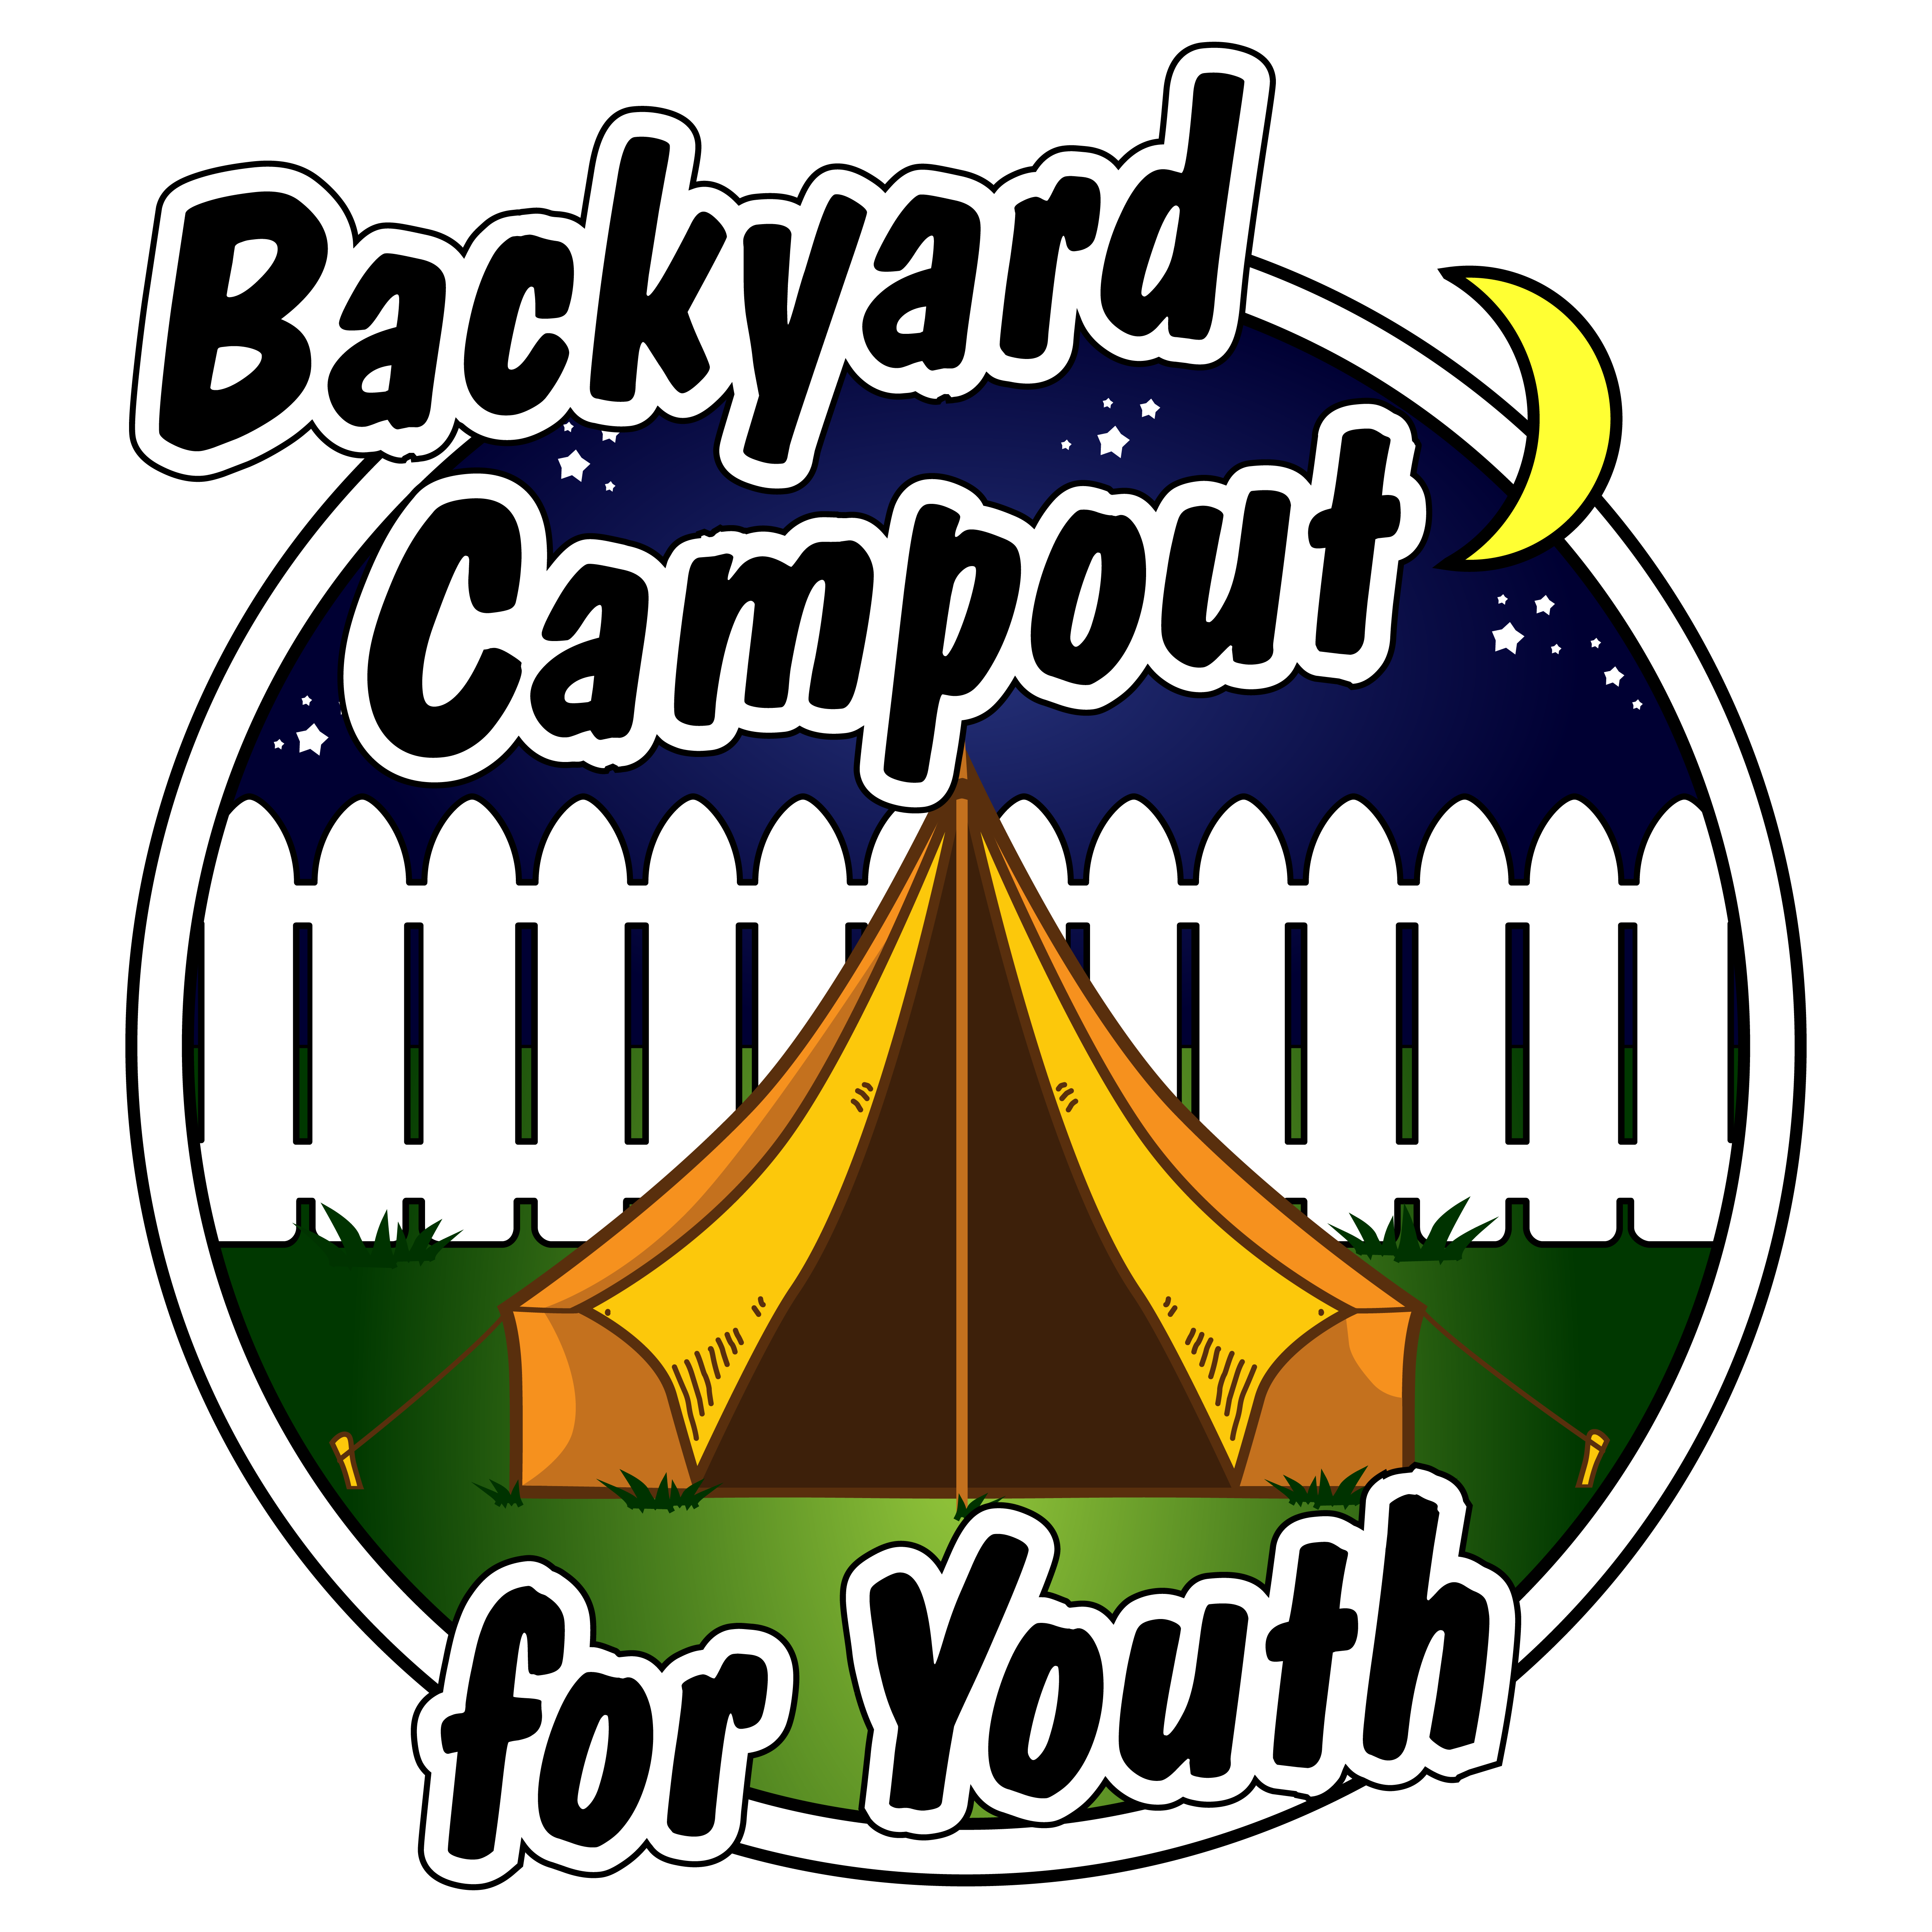 2021 BACKYARD CAMPOUT FOR YOUTH HAVEN